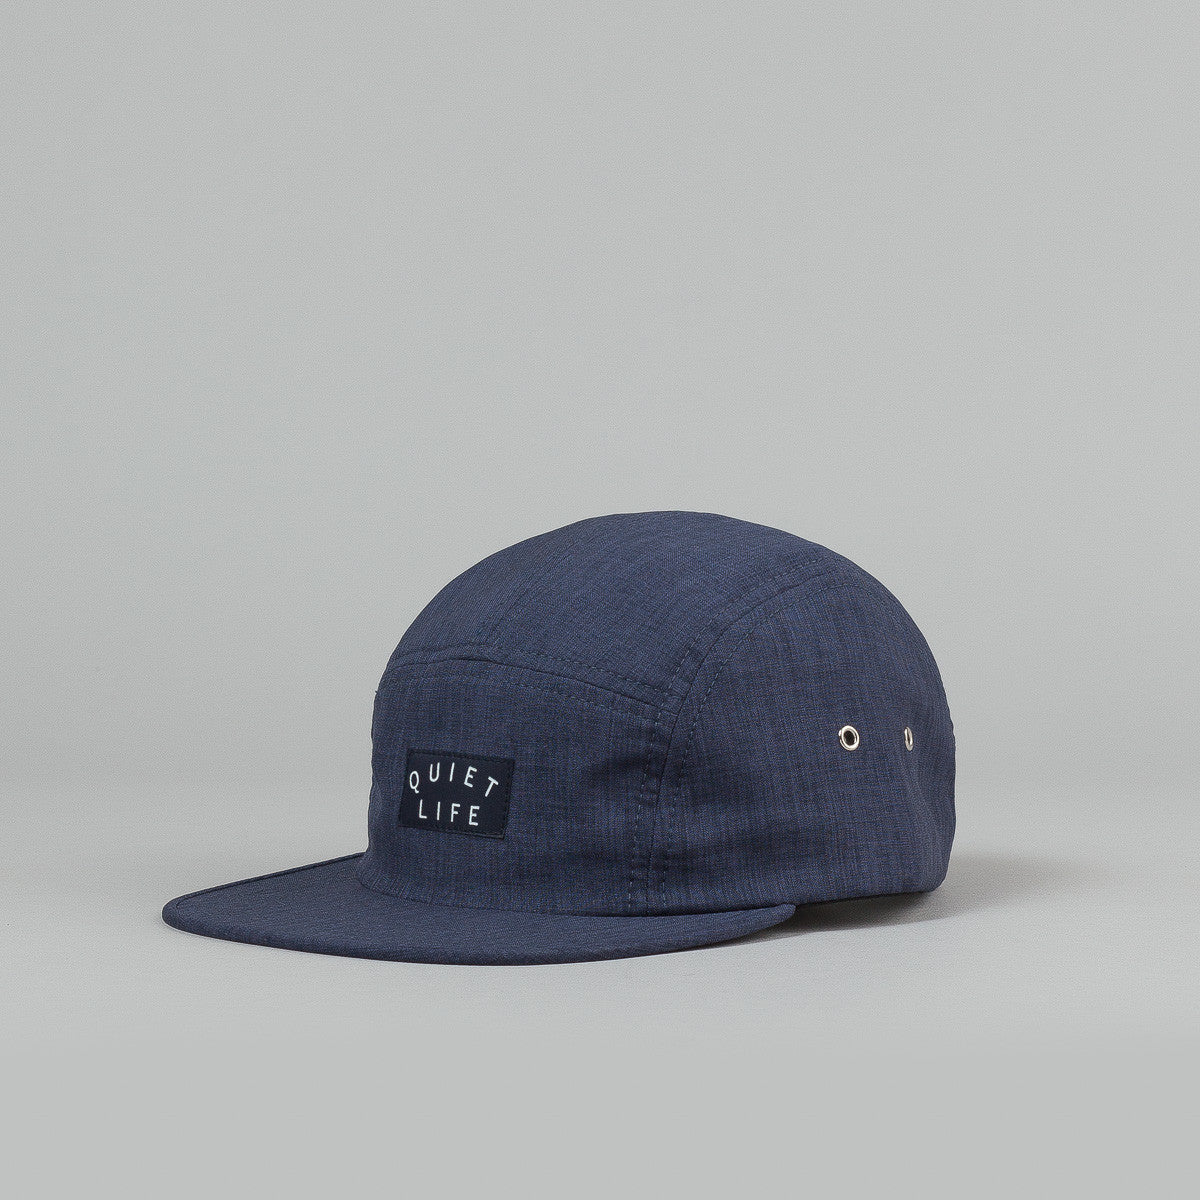 The Quiet Life Xanadu 5 Panel Cap